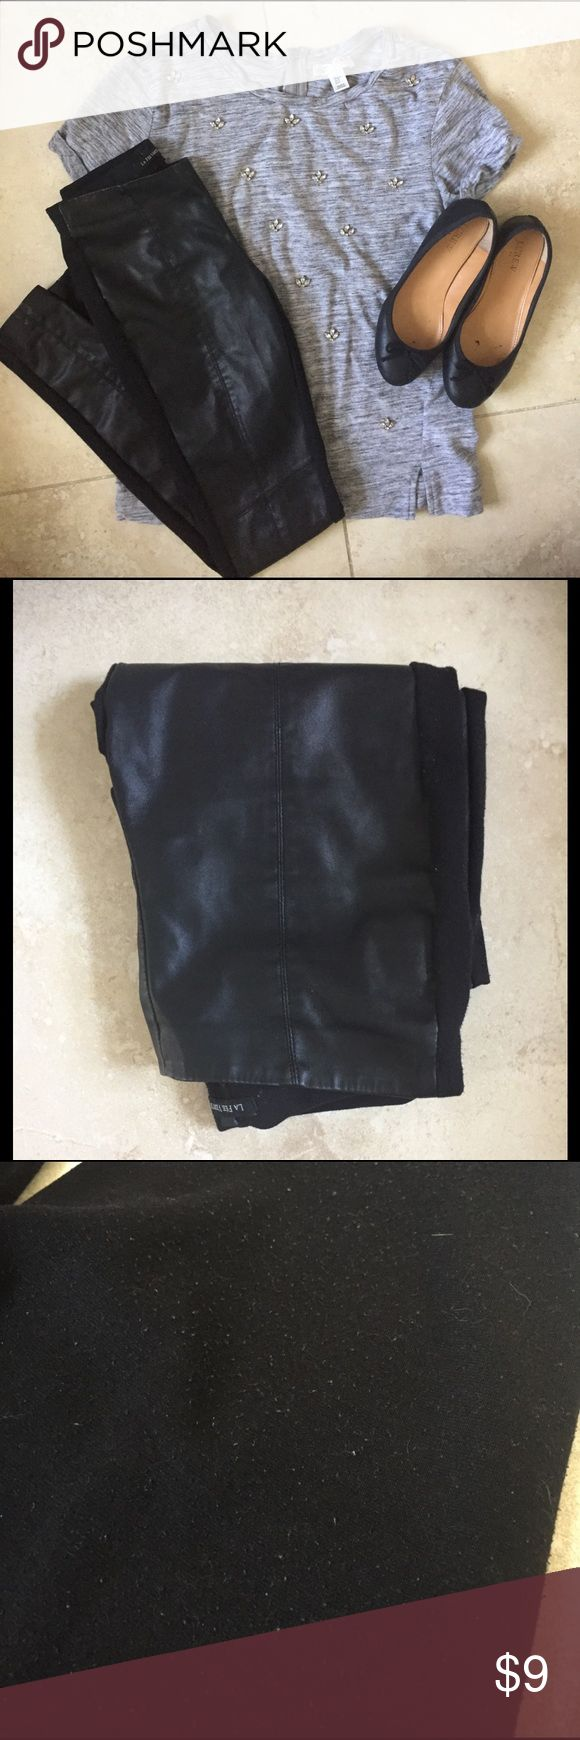 💝 Leather Front Skinny Pants Great pants to wear for work or going out! Leather front with soft, thick legging material on back. Leather front is in great condition and the back has some piling as pictured which can be removed with a sweater piler. Bottom of one leg seam has come undone but is an easy fix and stays in place if you tuck it in. Will fit 00. I accept offers ❤️ 20% off bundles! Pants Skinny